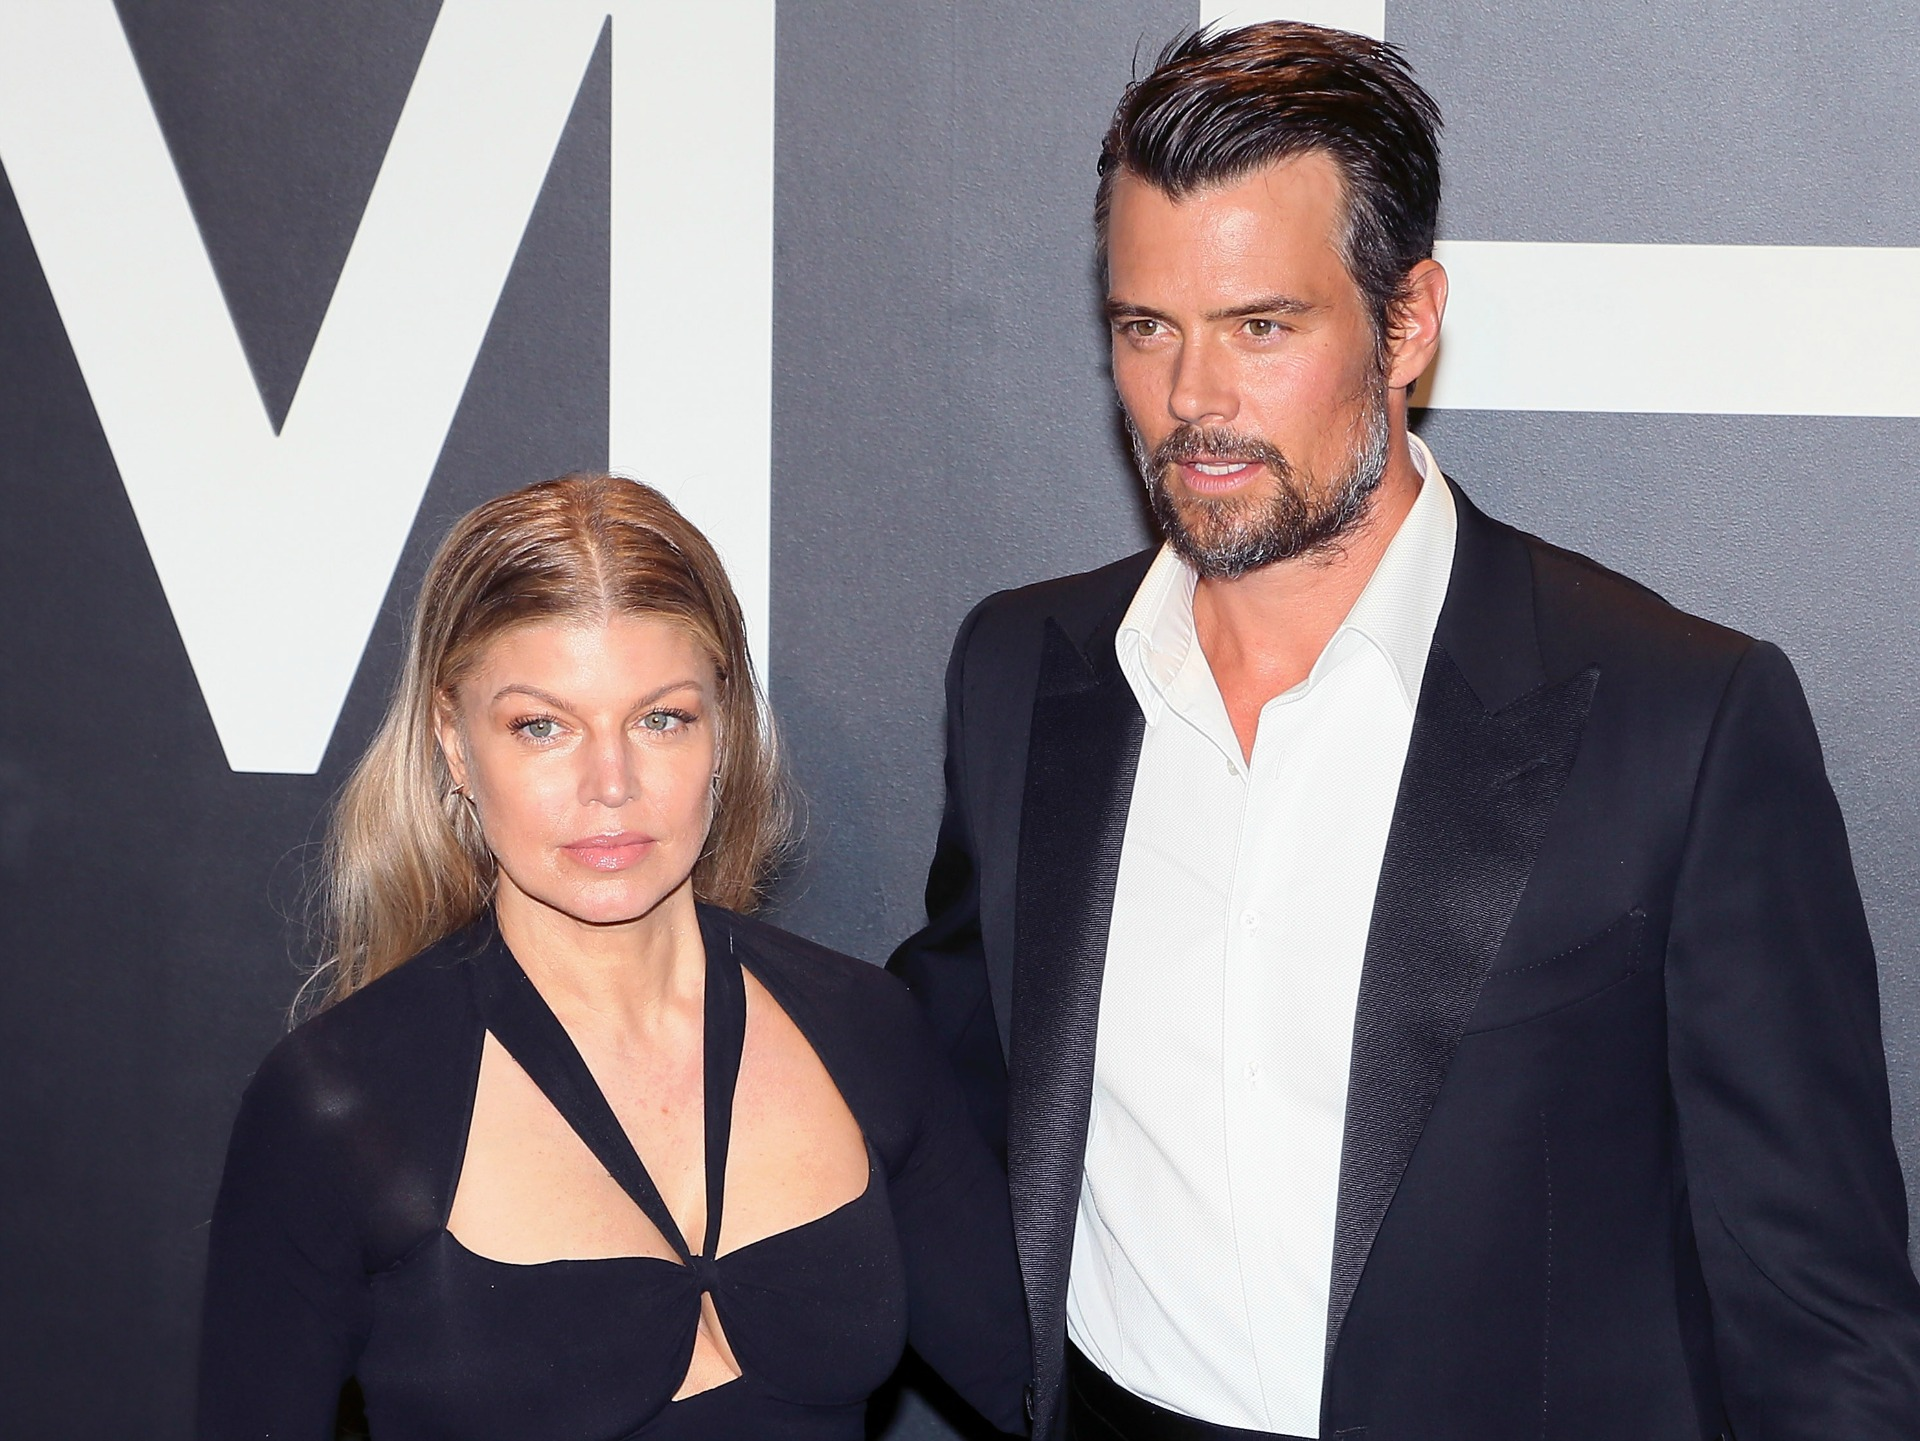 Fergie & Josh Duhamel announce separation after 8-year Marriage